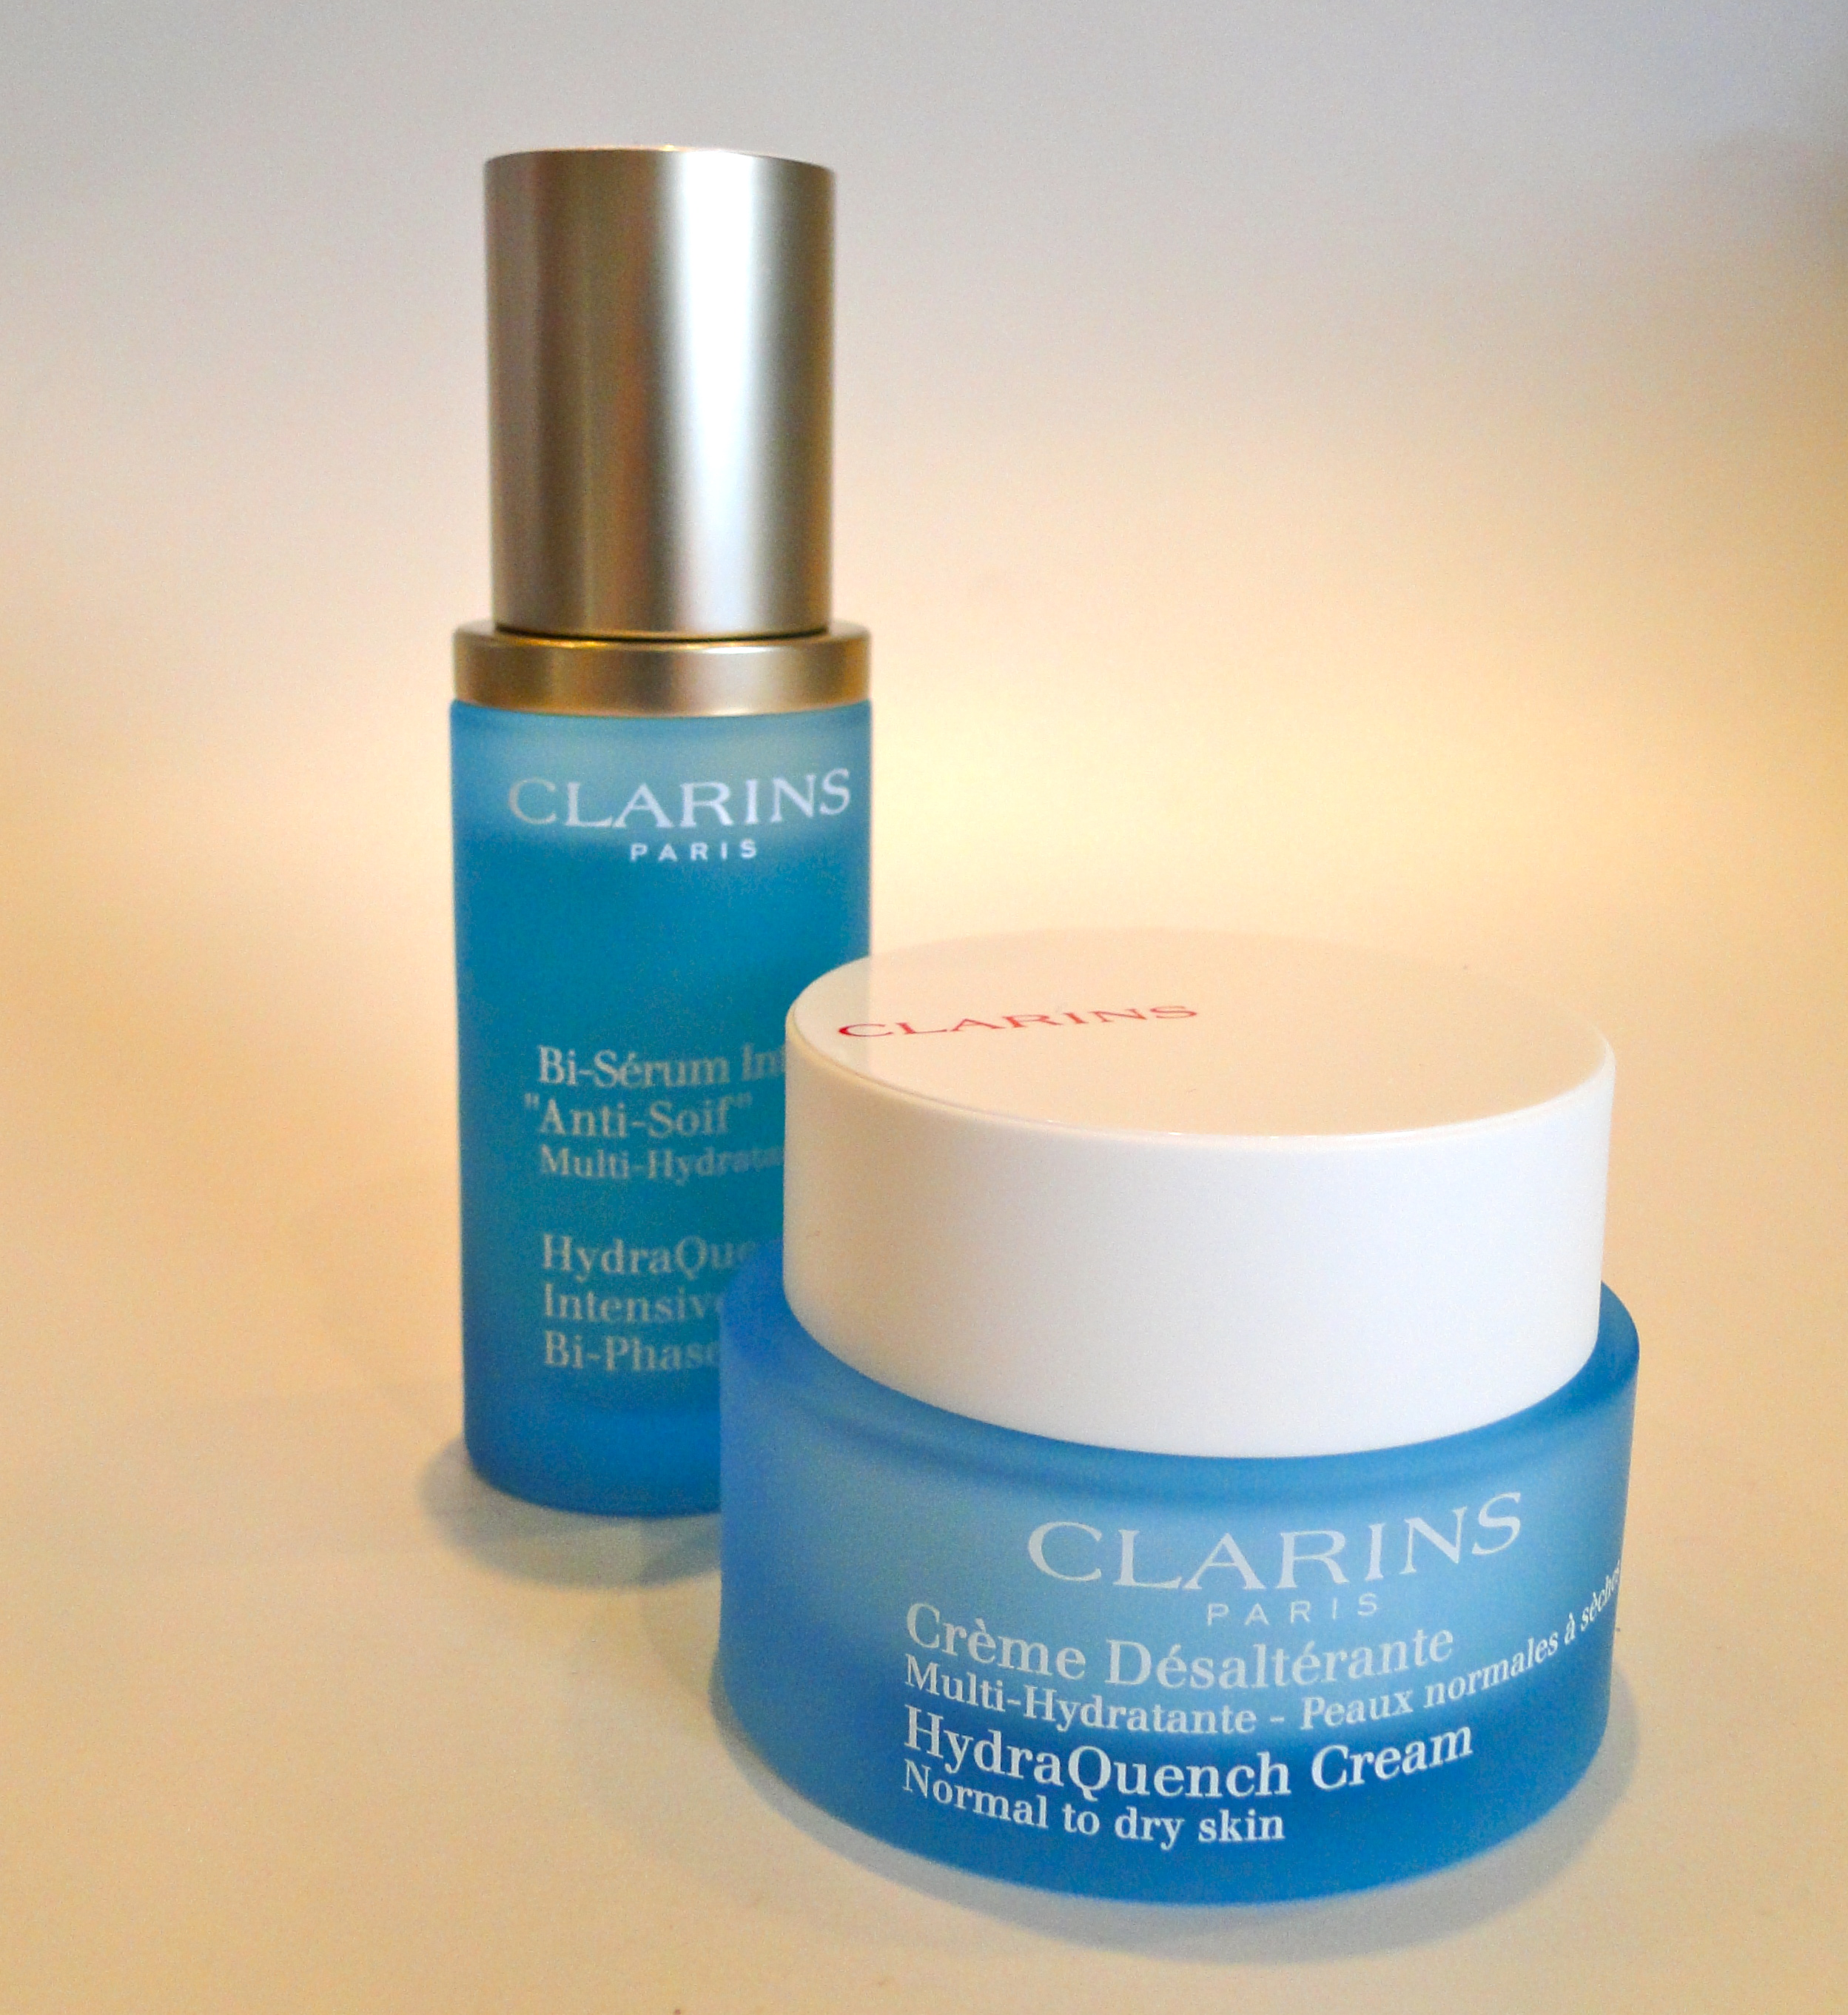 clarins hydraquench serum and cream the luxe list. Black Bedroom Furniture Sets. Home Design Ideas